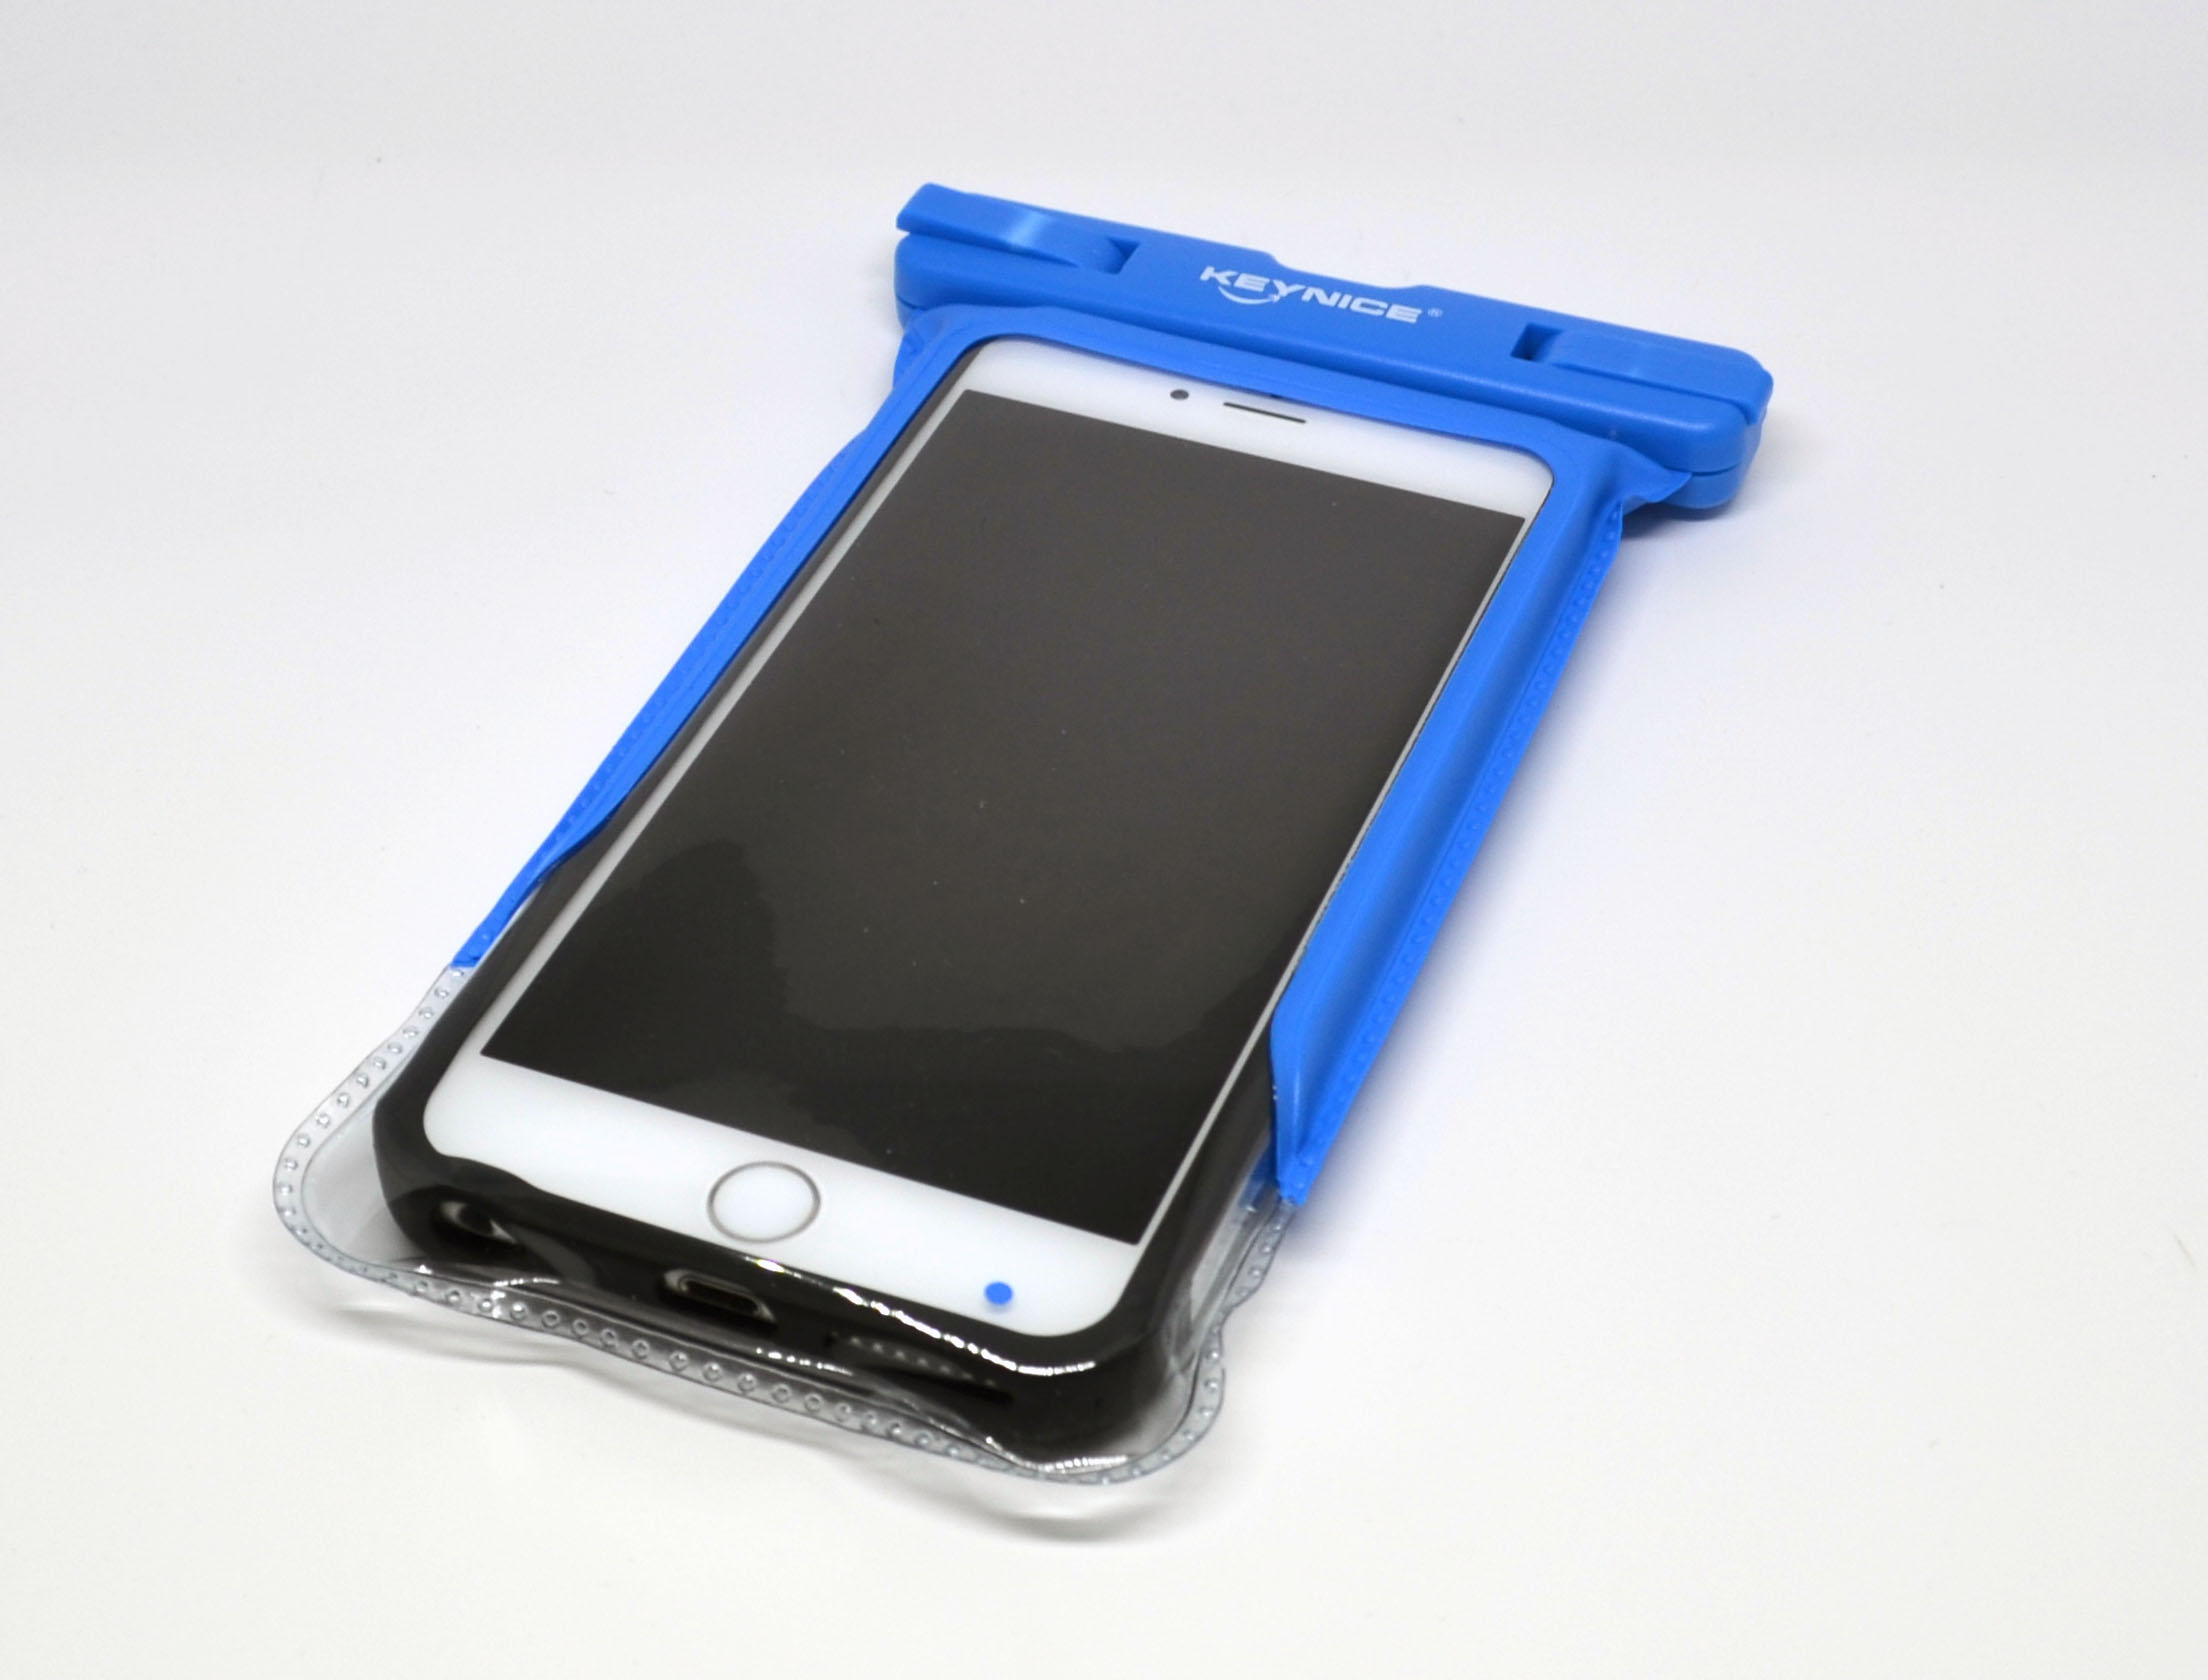 Review: Keynice Universal Waterproof Case for Smartphones